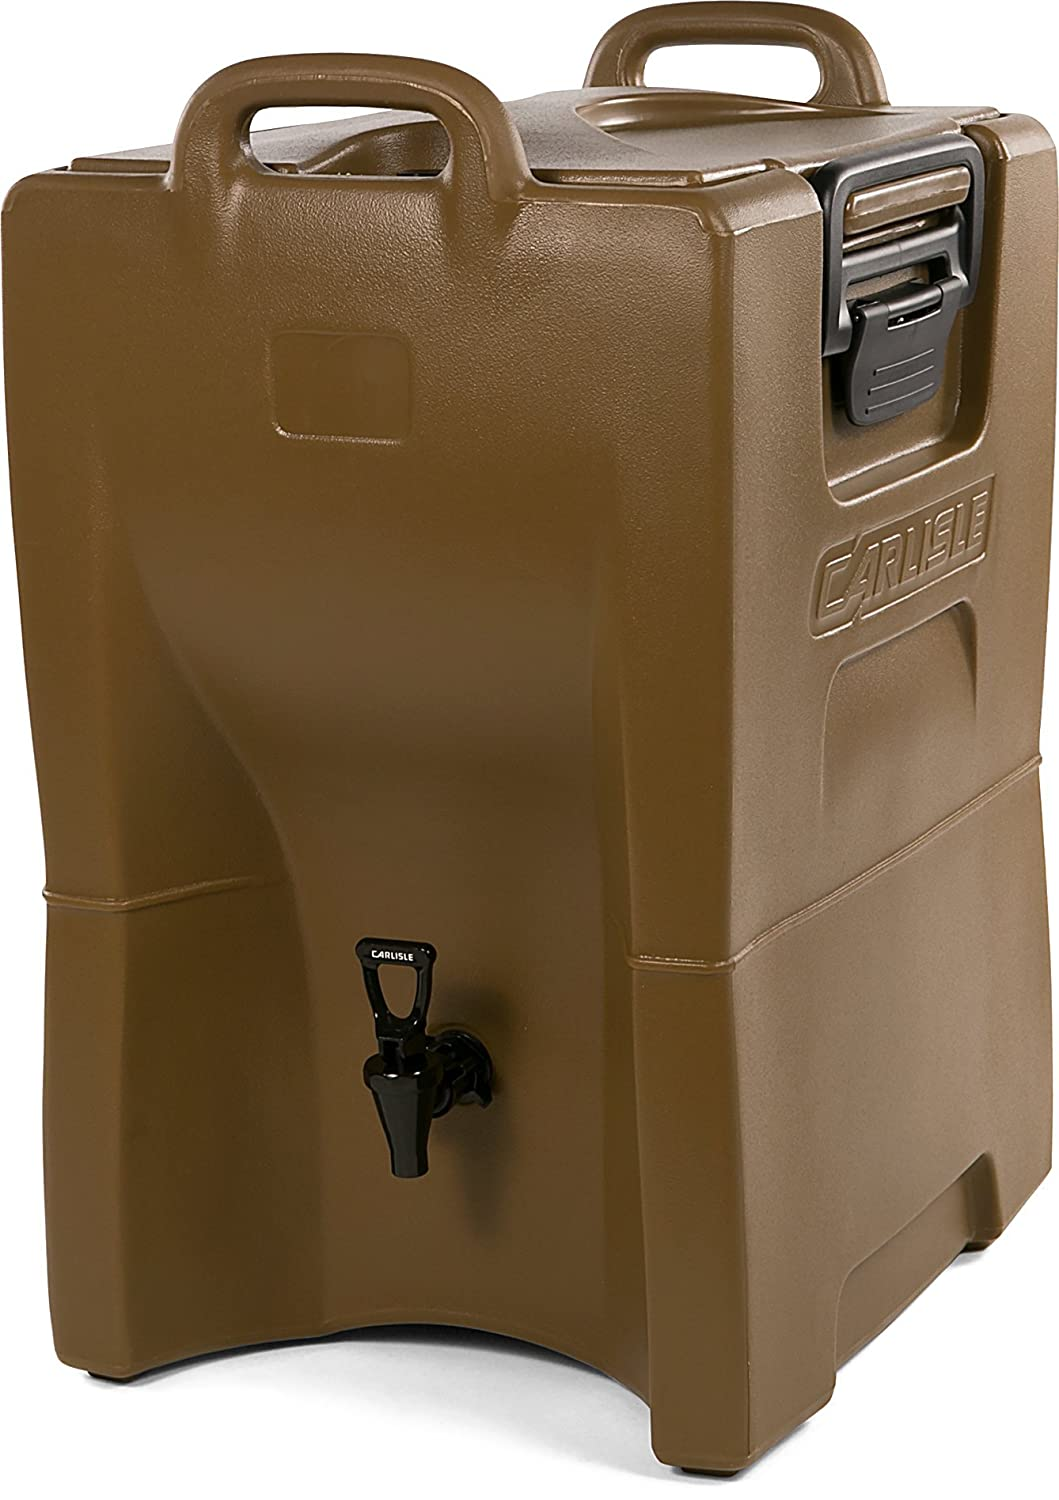 Carlisle IT100043 Cateraide IT Insulated Beverage Server / Dispenser, 10 Gallon, Caramel